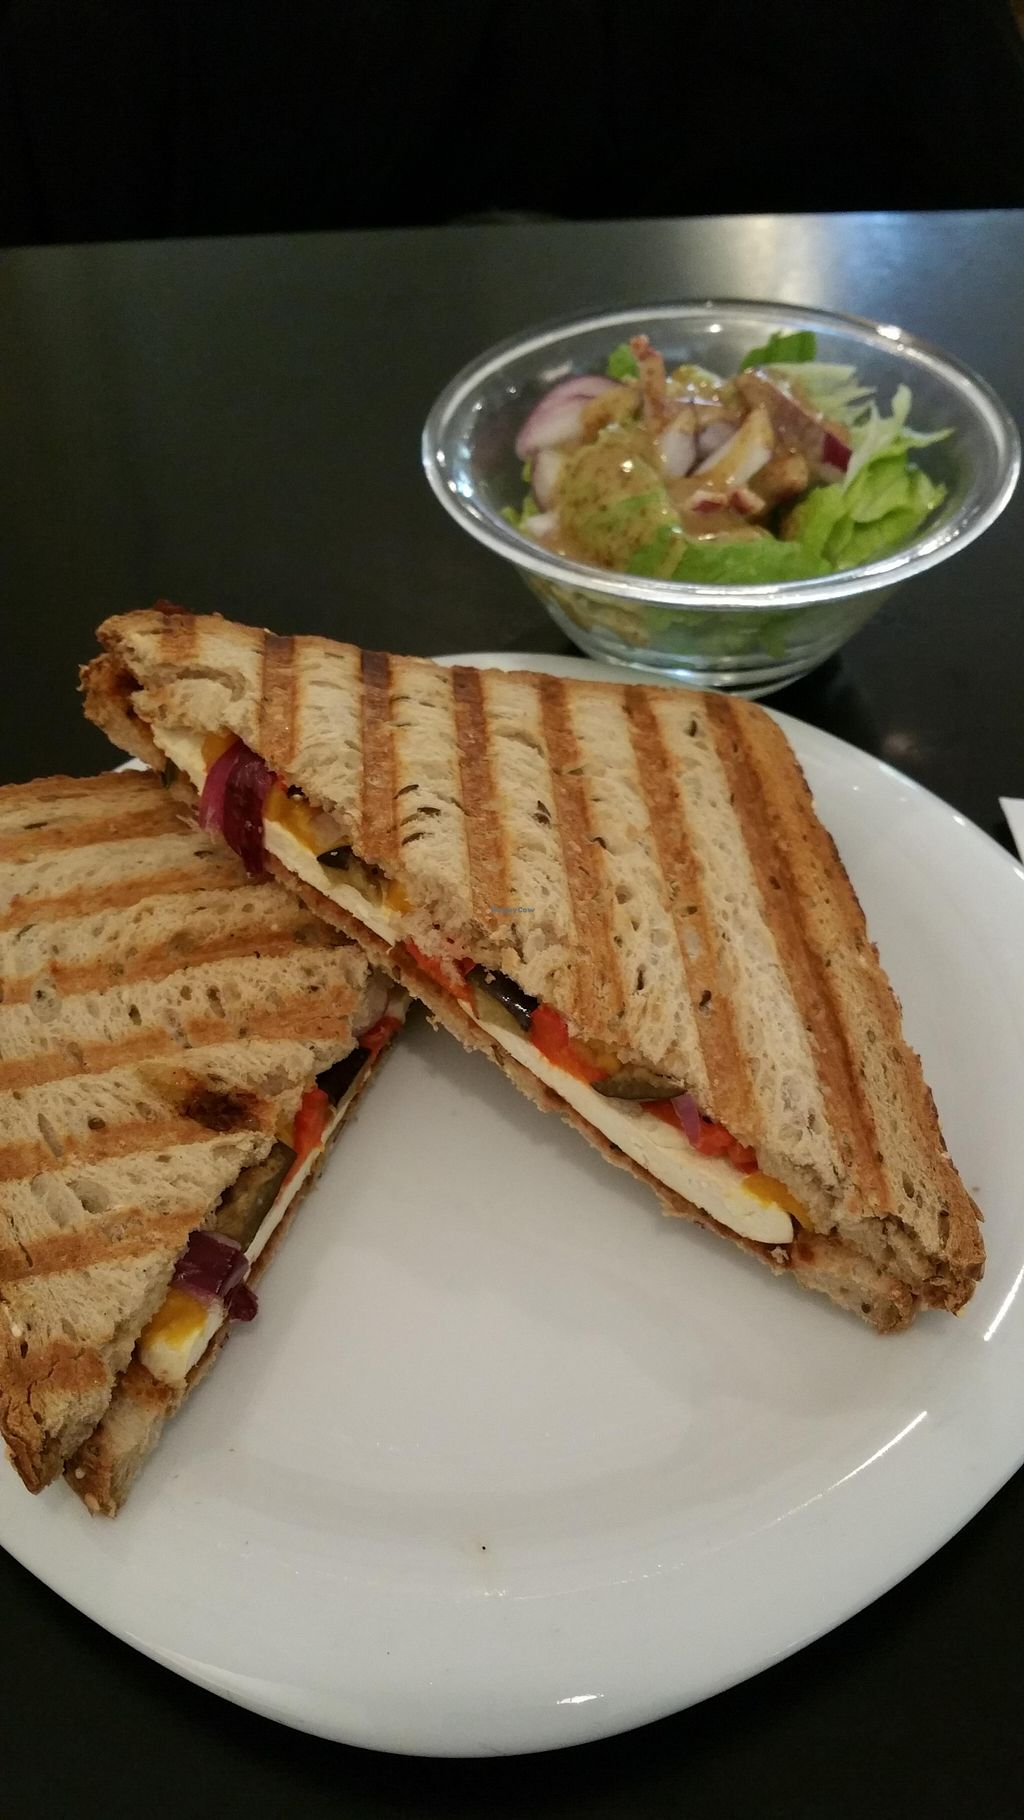 """Photo of Bookworm - Mazeh  by <a href=""""/members/profile/Brok%20O.%20Lee"""">Brok O. Lee</a> <br/>Vegan grilled sandwich <br/> December 23, 2015  - <a href='/contact/abuse/image/44451/129570'>Report</a>"""